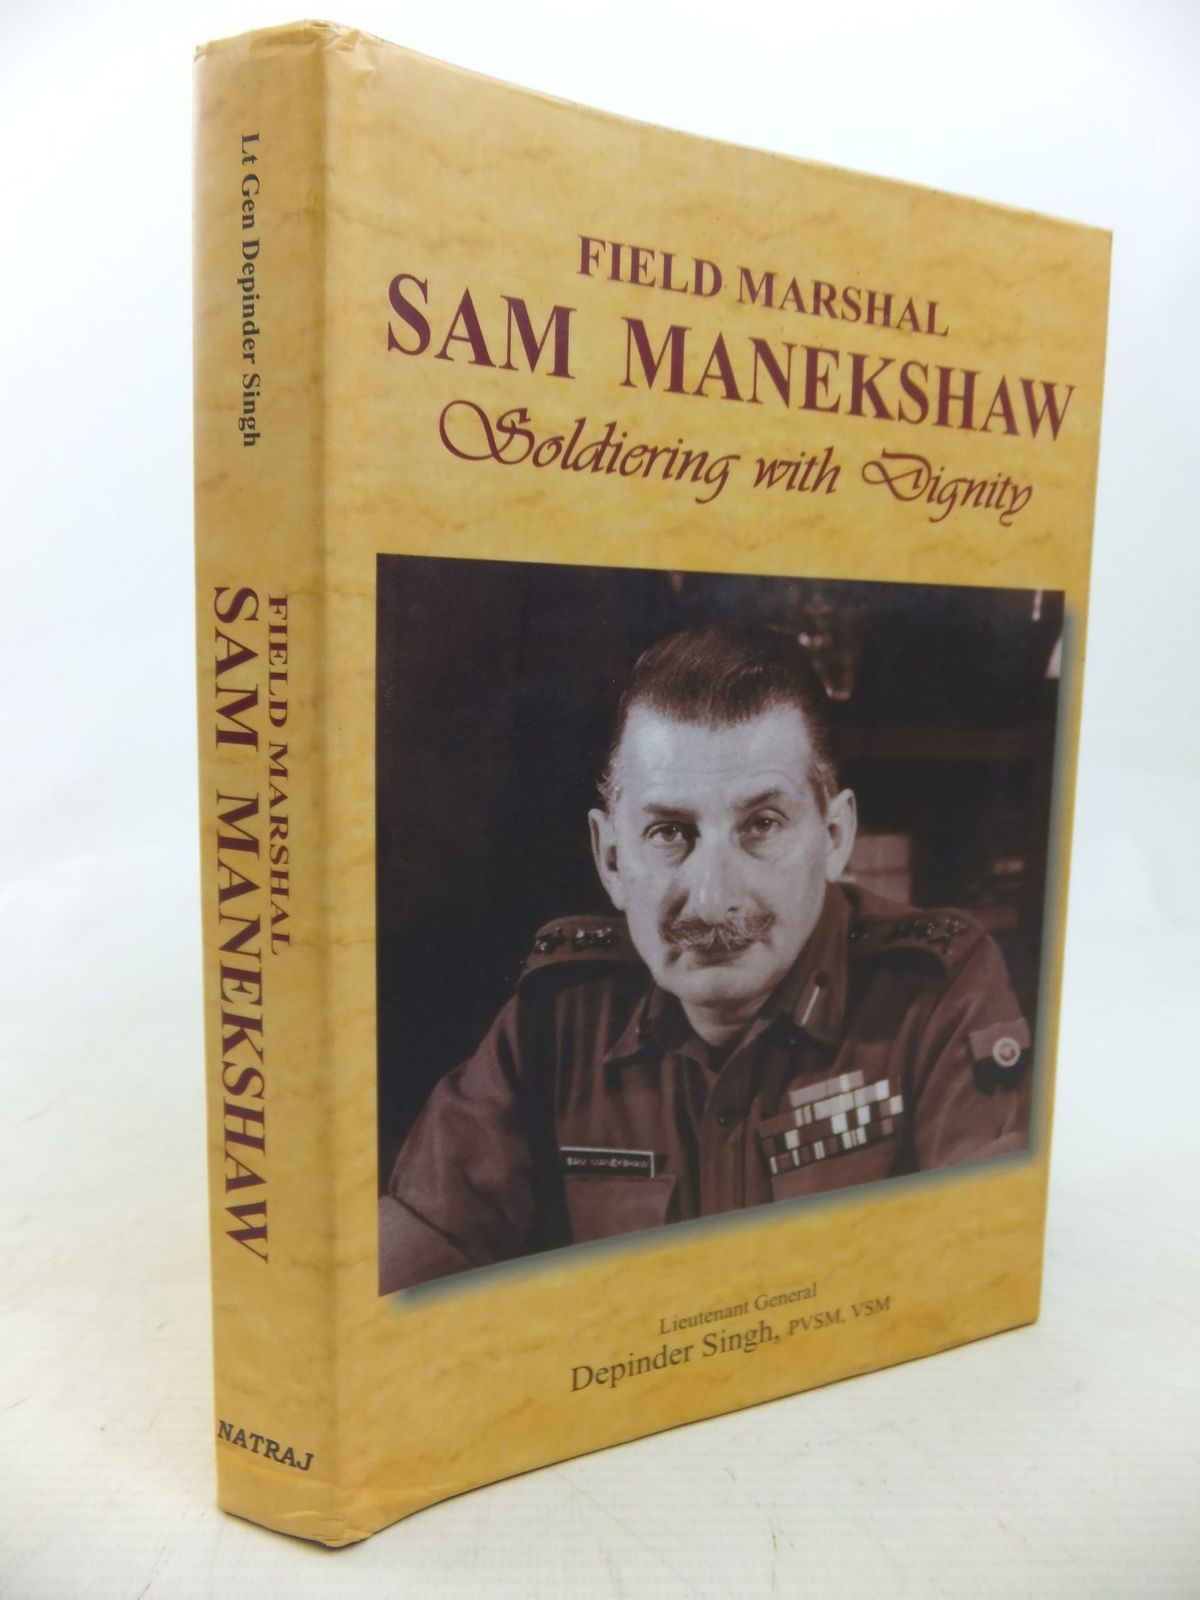 field marshal sam manekshaw soldiering with dignity pdf